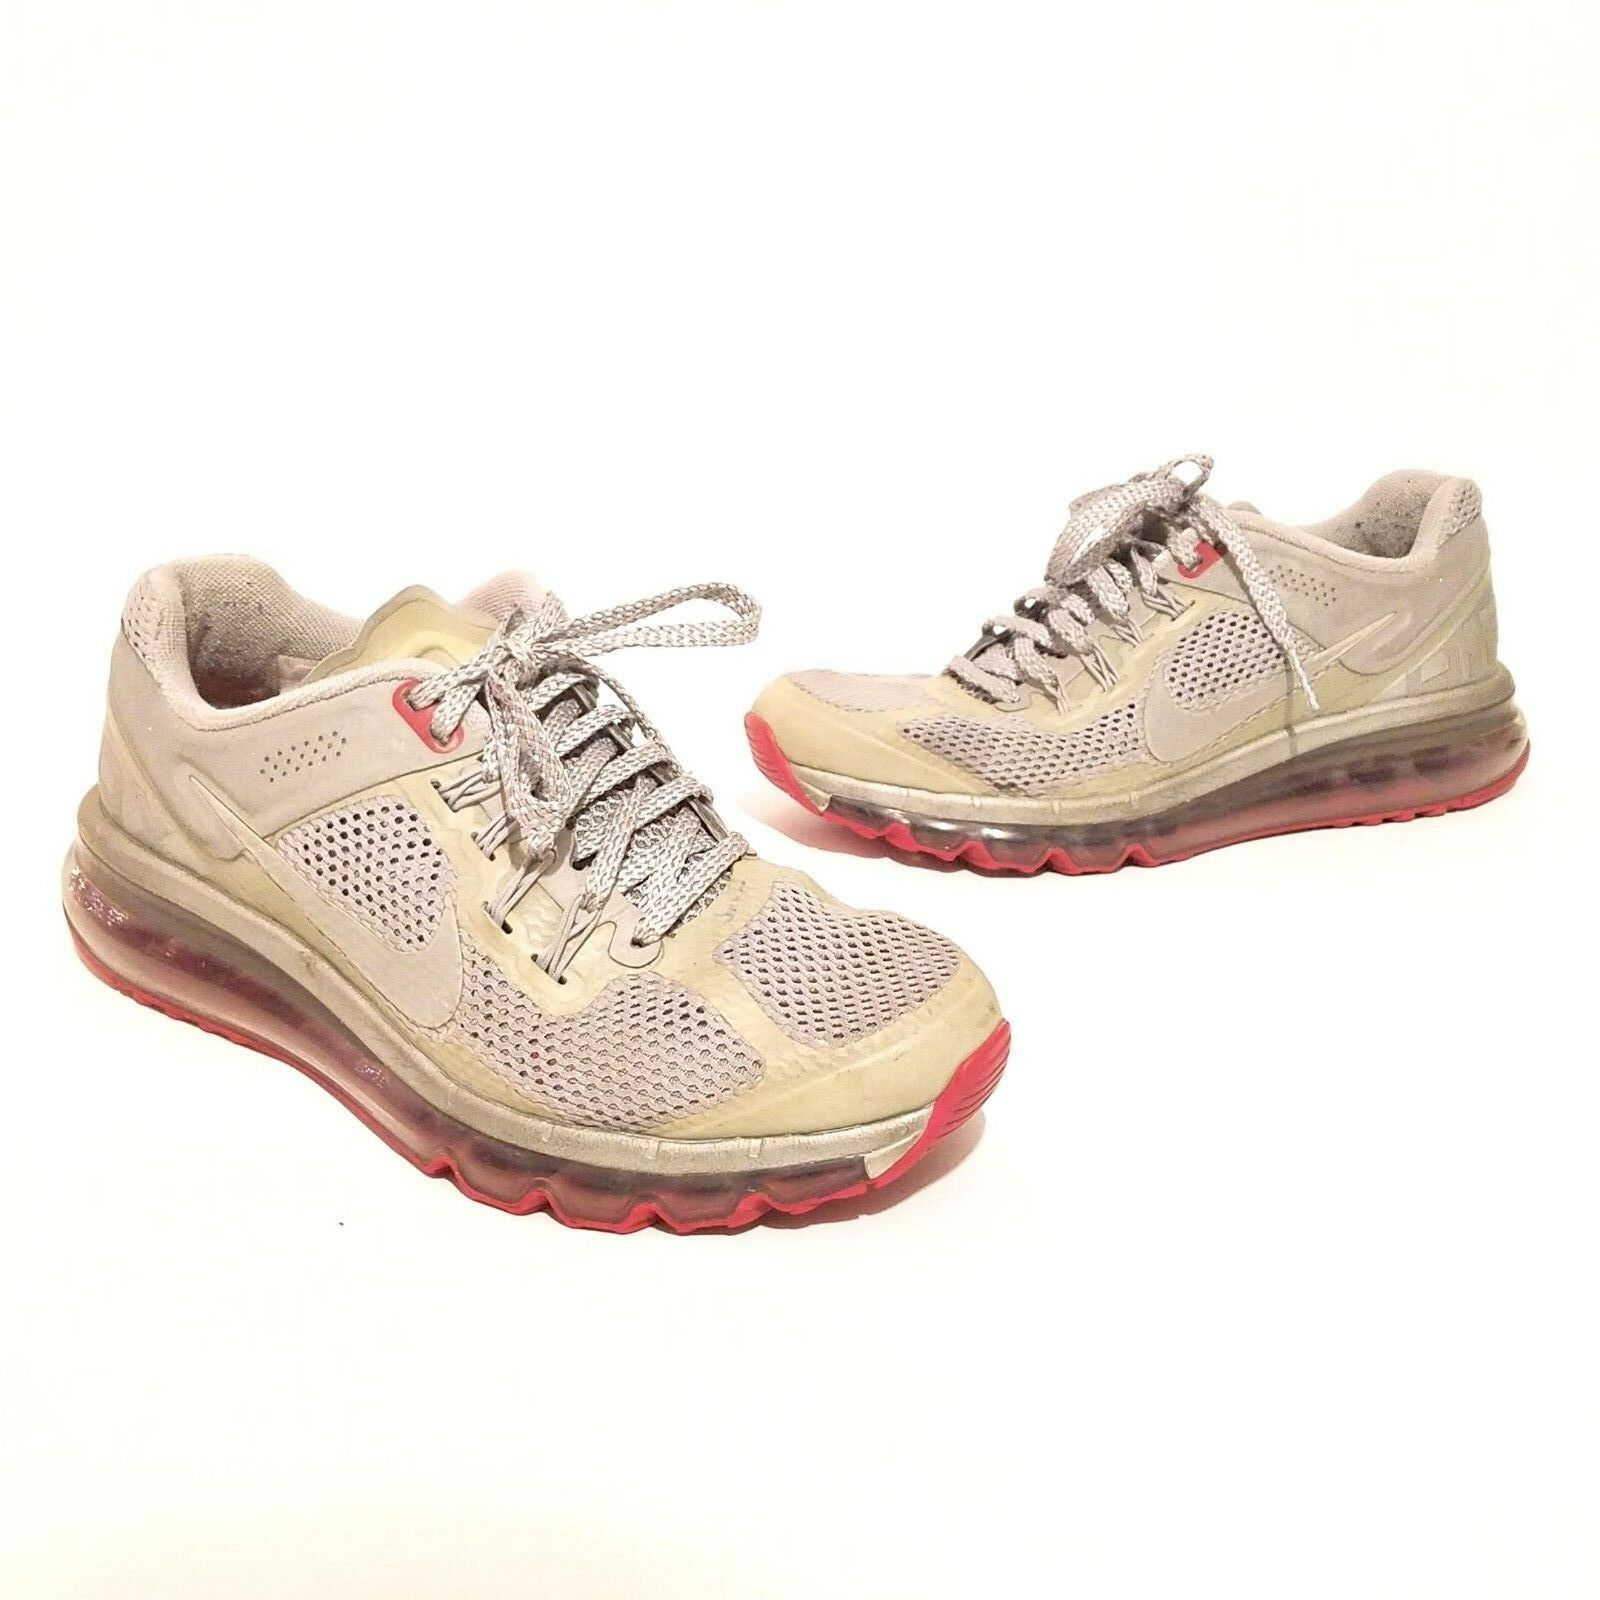 Primary image for Nike 2013 Women's Airmax Limited Athletic Shoes Size 8 US Gray & Red 579585-006